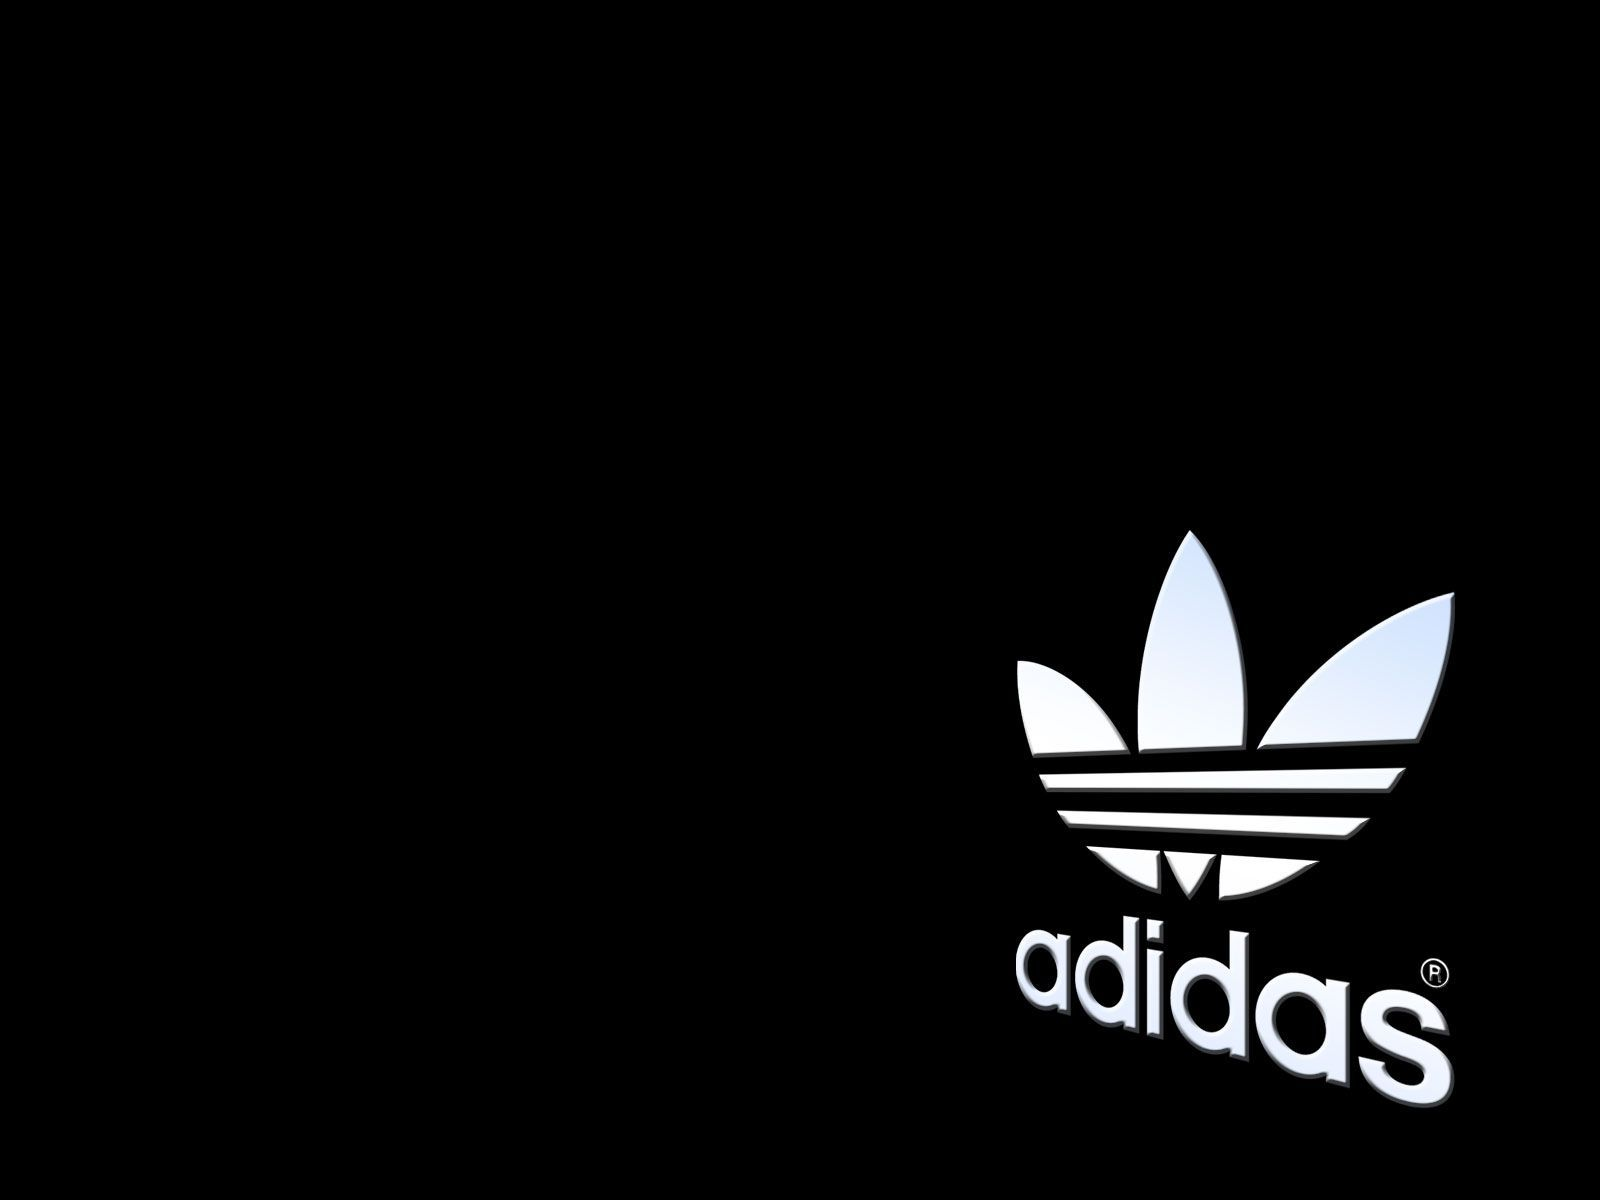 AZB Adidas Wallpapers Adidas Full HD Pictures and Wallpapers